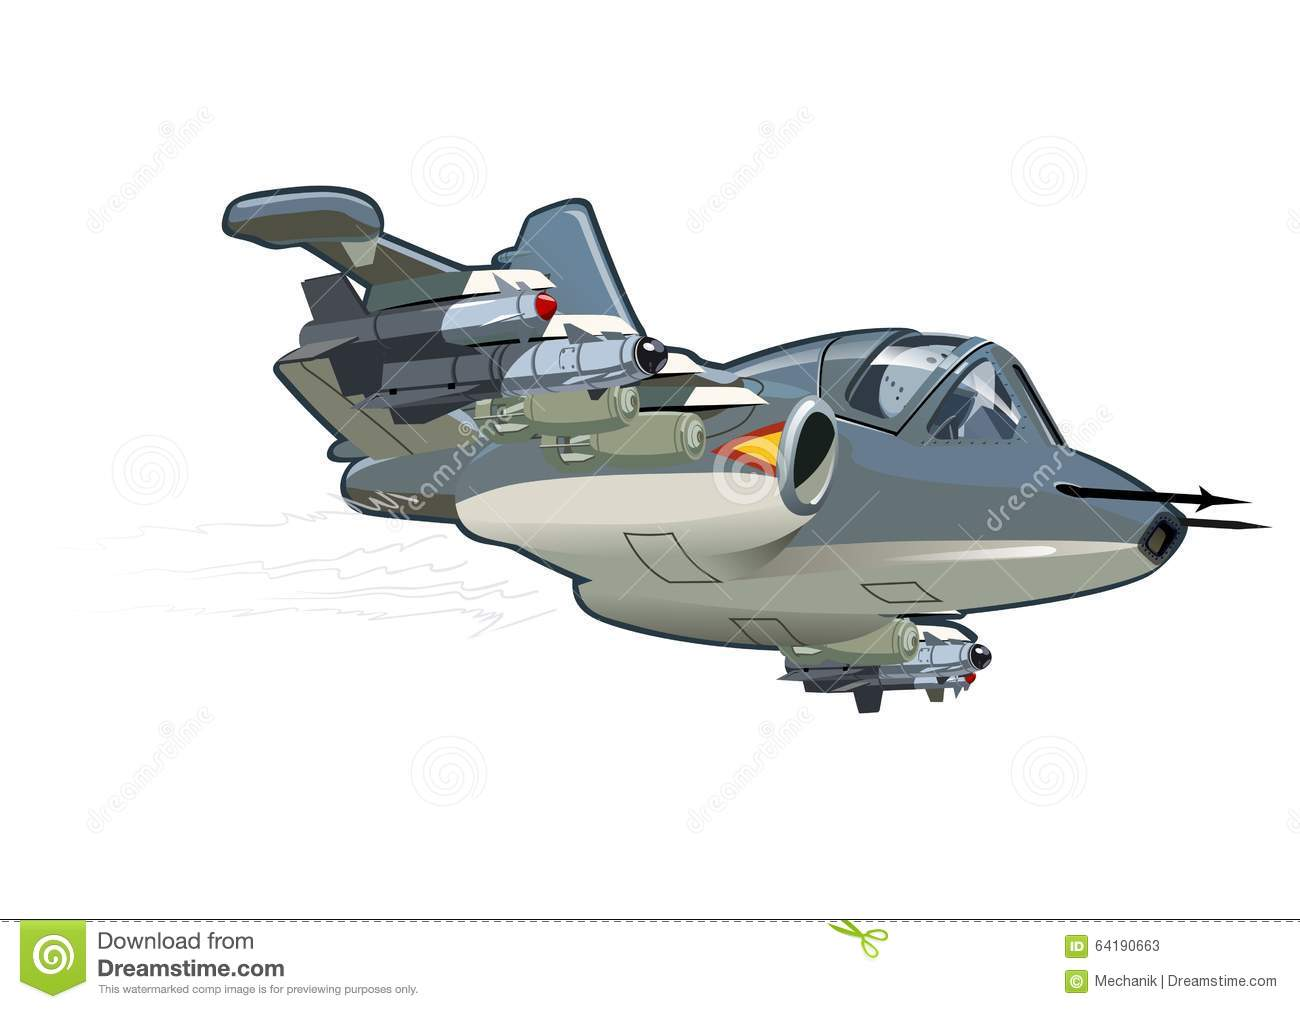 plane wing drawing with Stock Illustration Cartoon Military Airplane Vector Attack Plane Available Eps Vector Format Separated Groups Layers Easy Edit Image64190663 on Stock Illustration Cartoon Military Airplane Vector Attack Plane Available Eps Vector Format Separated Groups Layers Easy Edit Image64190663 likewise Drawing Nose besides Cayley together with Showthread also Basic Aircraft Structure.